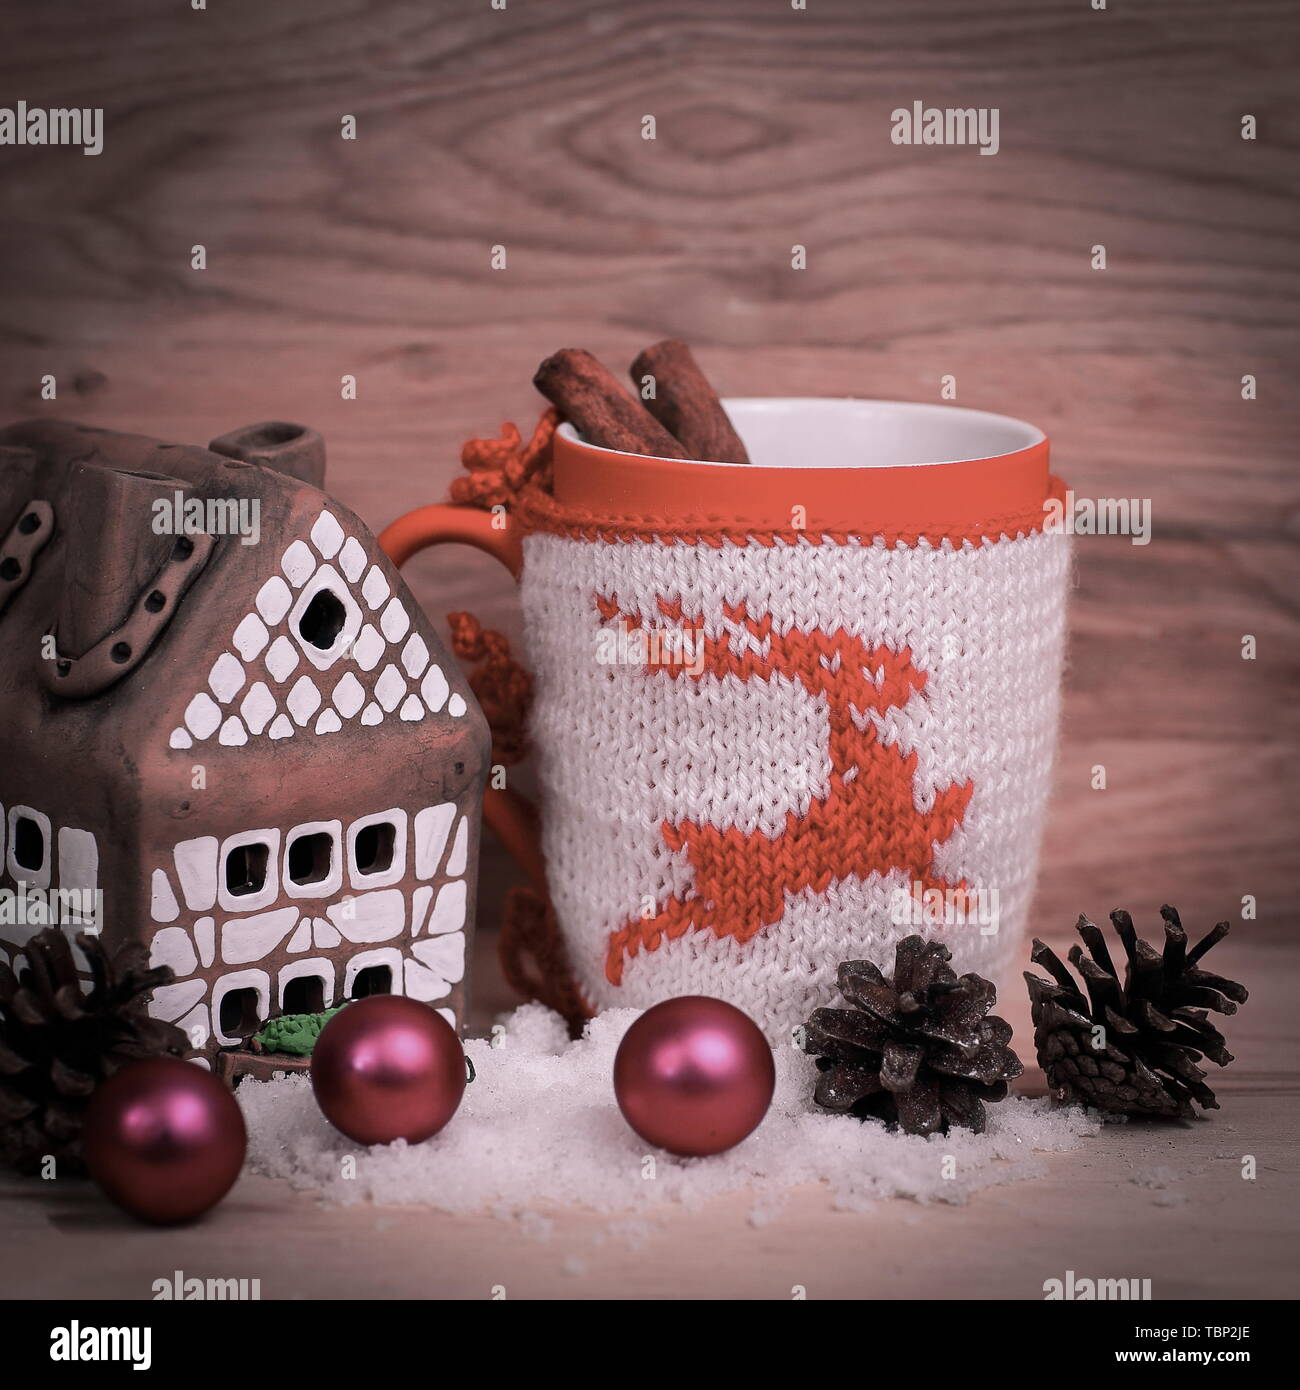 Christmas Cup and a gingerbread house on a wooden table .photo with space for text - Stock Image